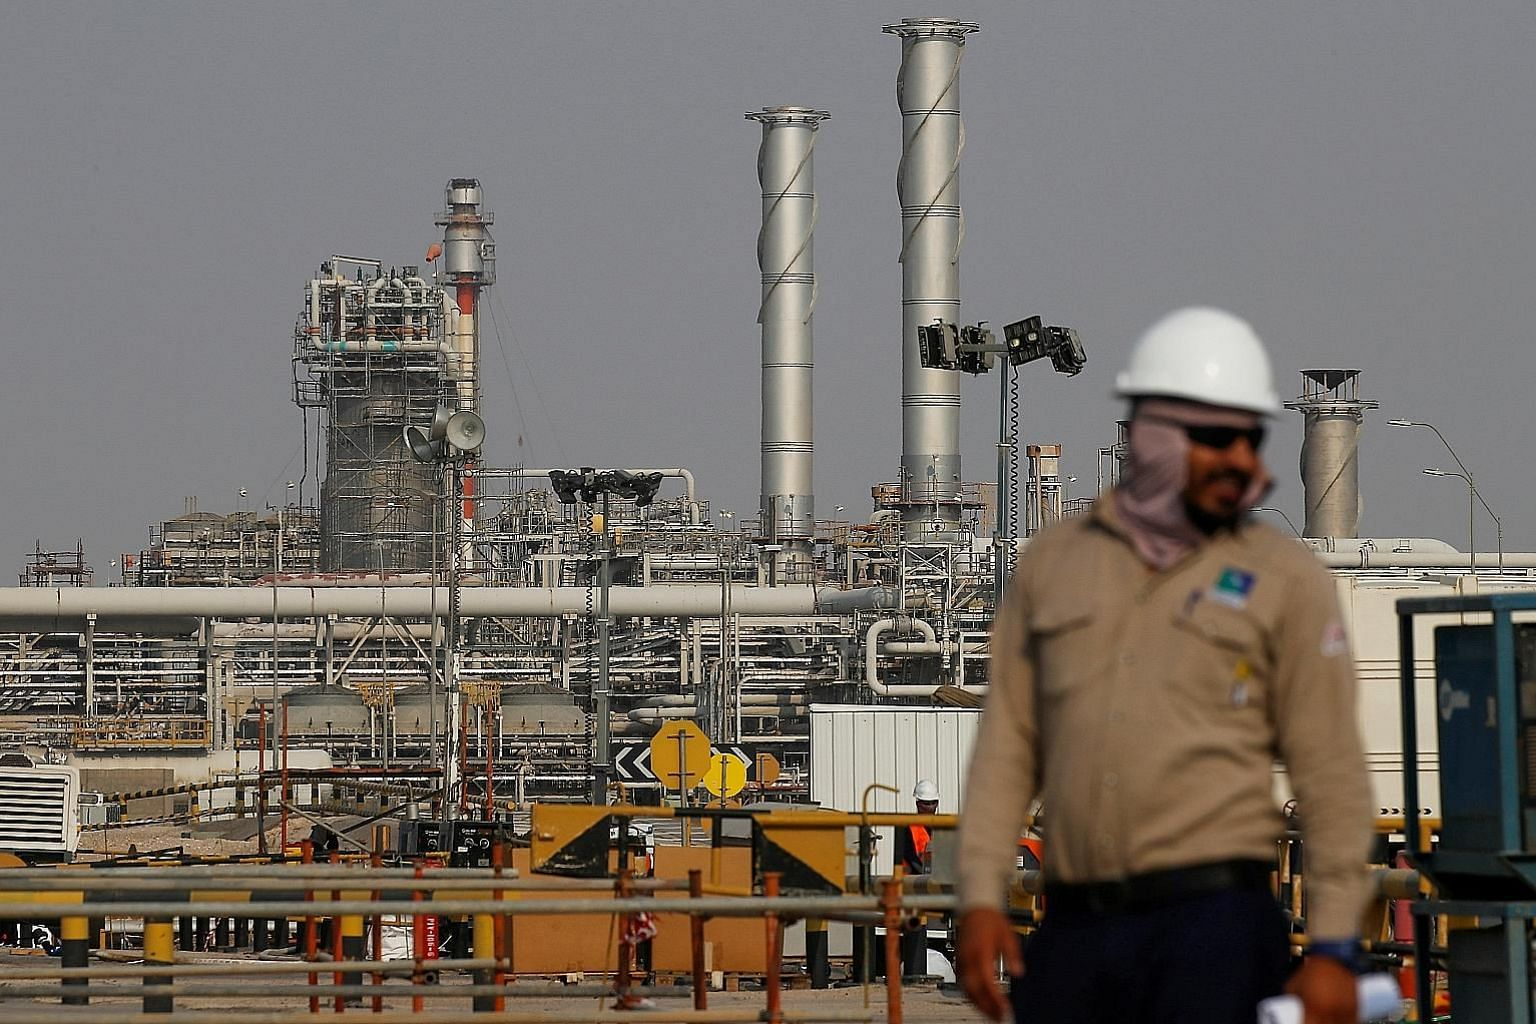 An Aramco oil facility in Abqaiq, Saudi Arabia. The Saudi government plans to sell 2 per cent of Aramco in a domestic listing on Dec 11, sources say.